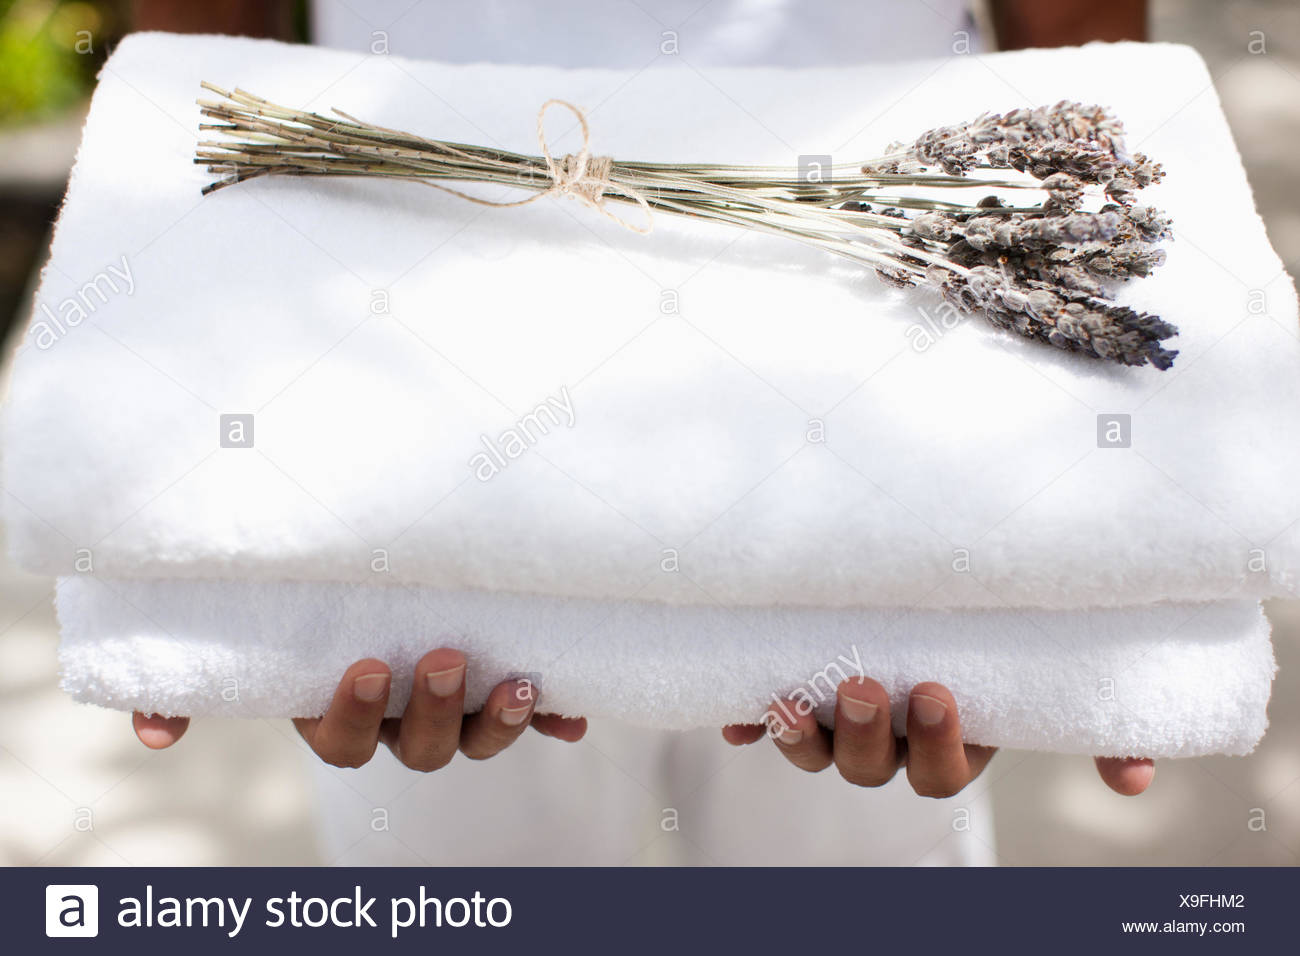 Man holding towels - Stock Image